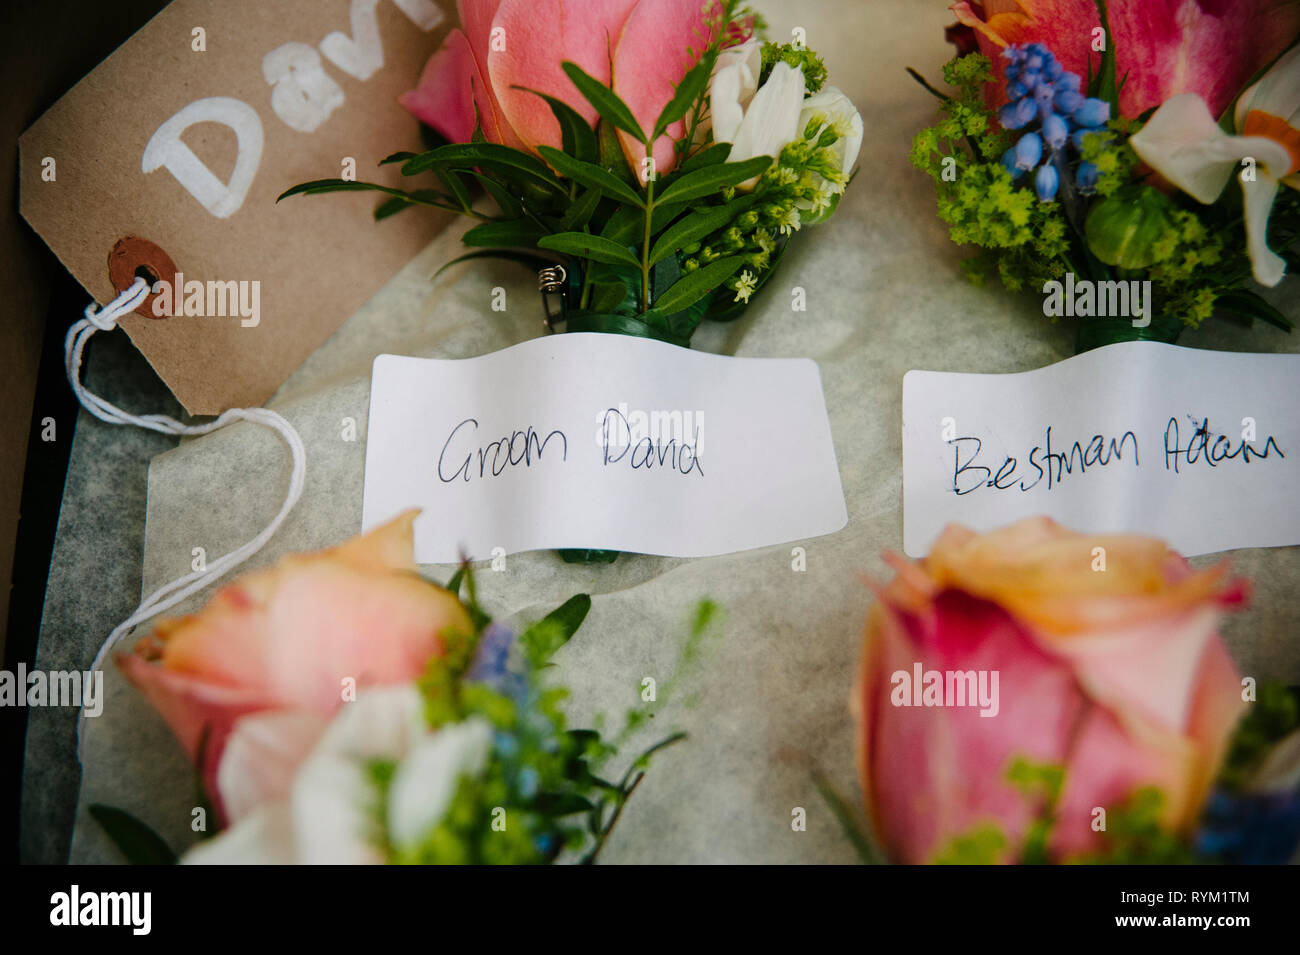 Men's wedding buttonhole flowers, colourful and rustic flowers. Buttonhole flower ideas - Stock Image